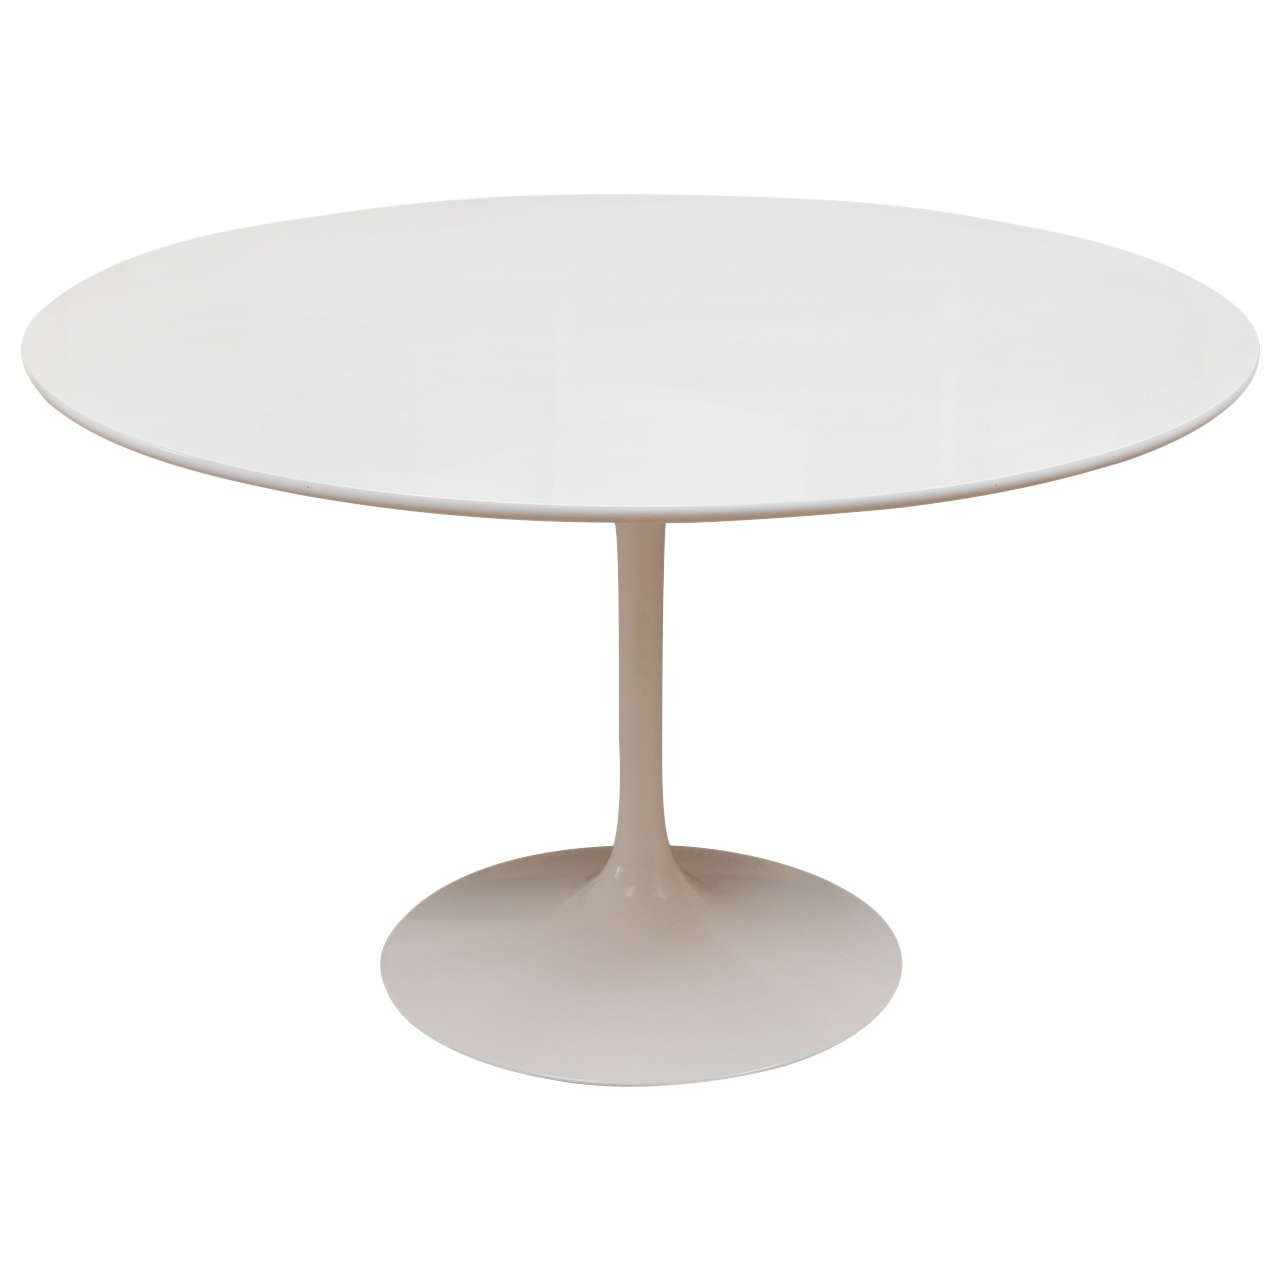 Saarinen for knoll tulip dining table at 1stdibs for Tulip dining table